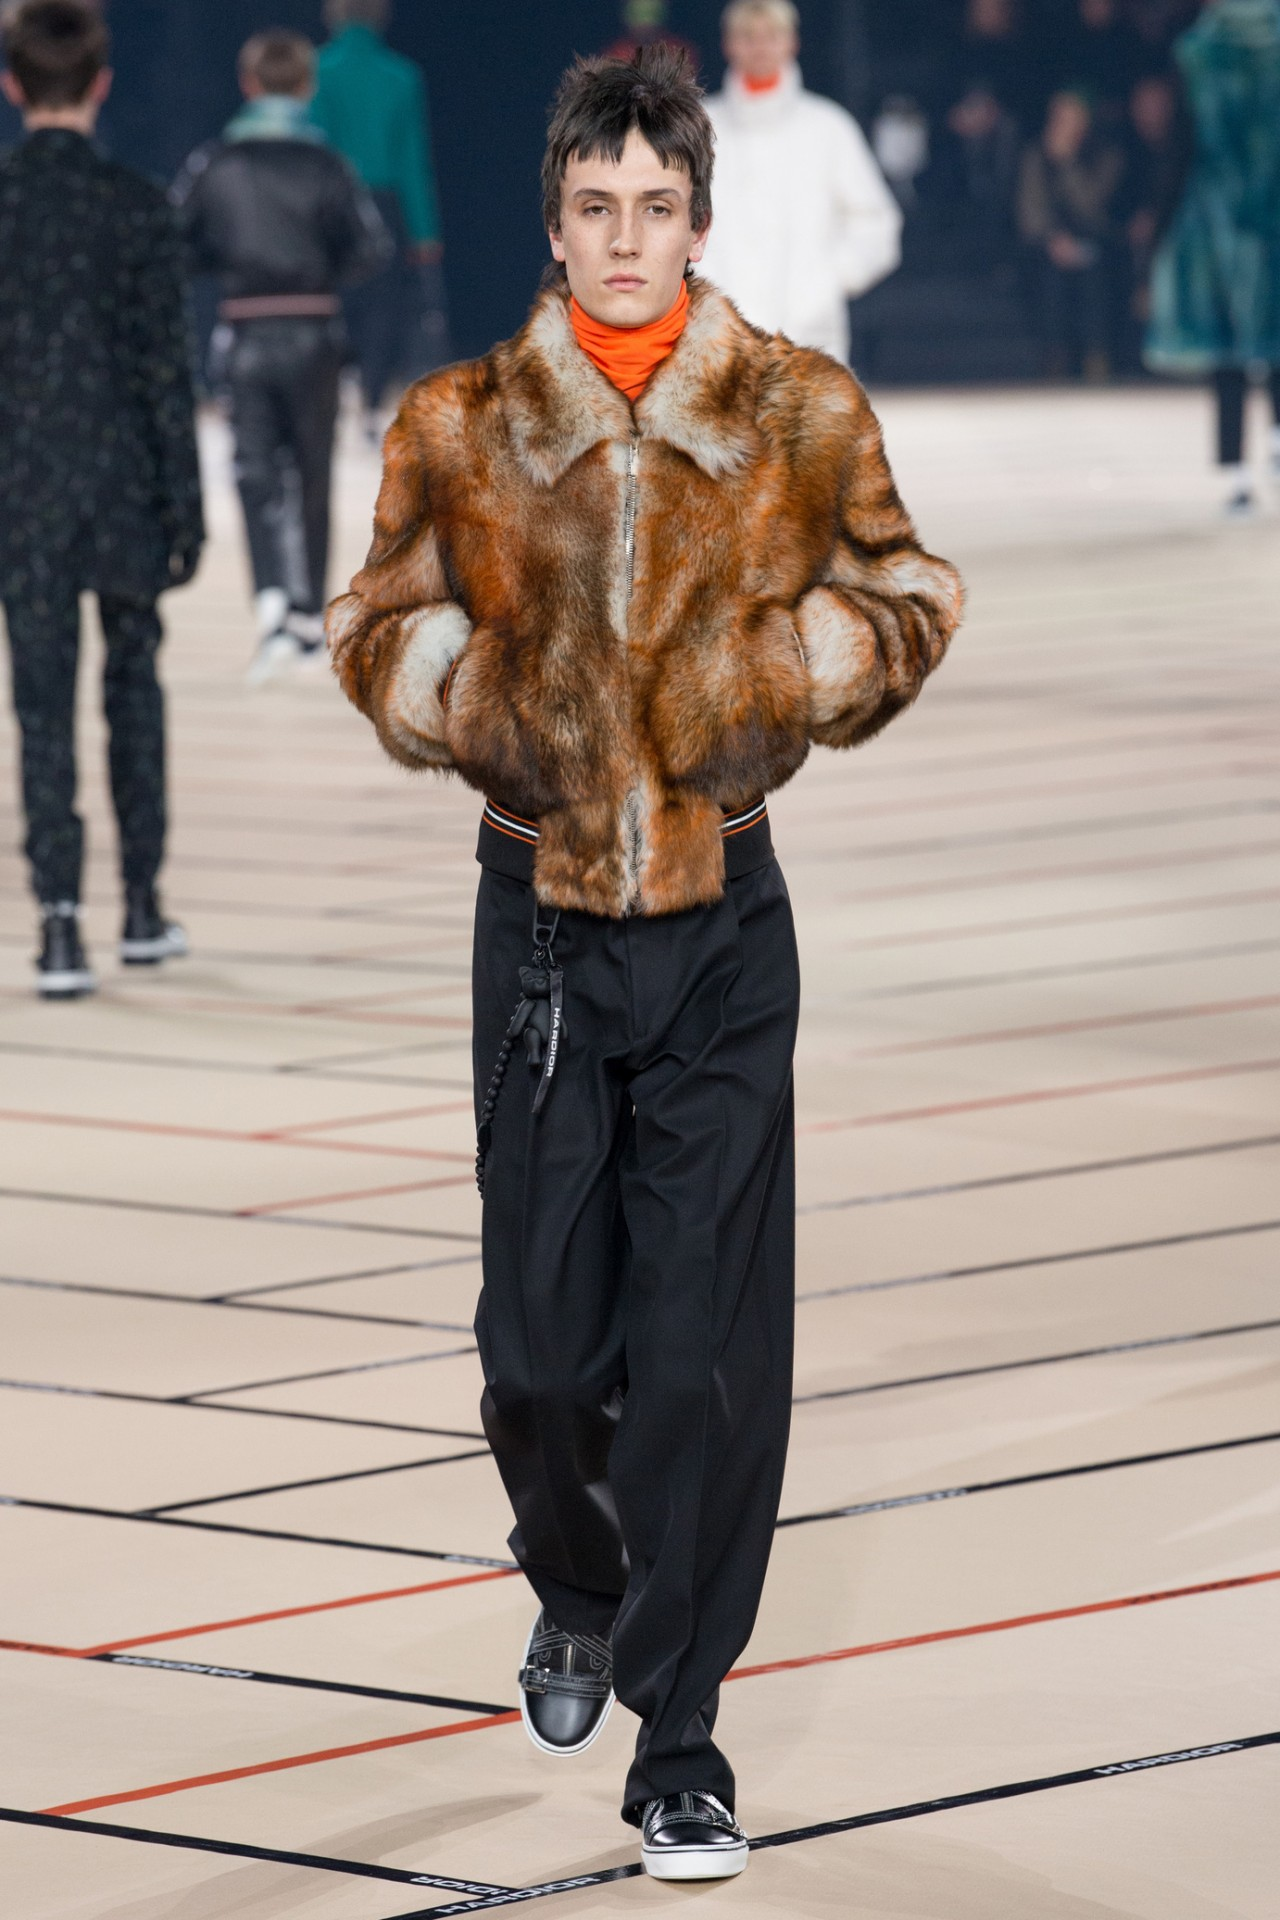 Percevalties Paris Menswear Fashion Week : les essentiels partie 2